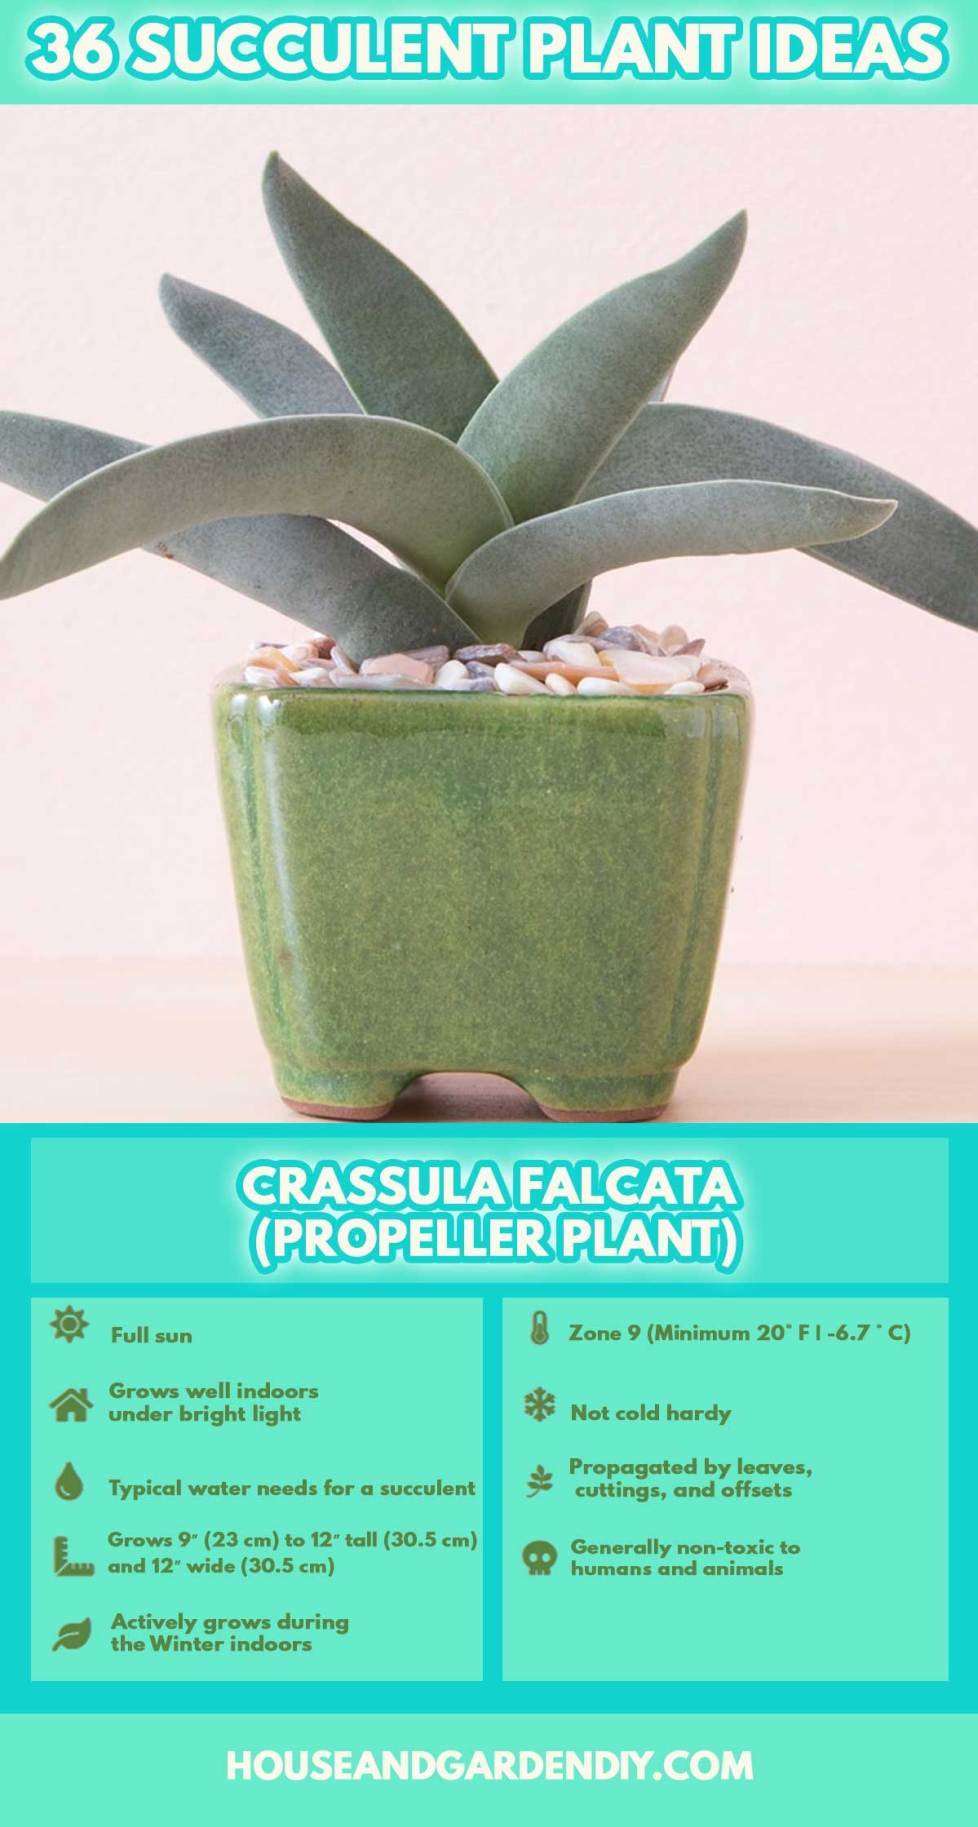 care of succulent plants indoors